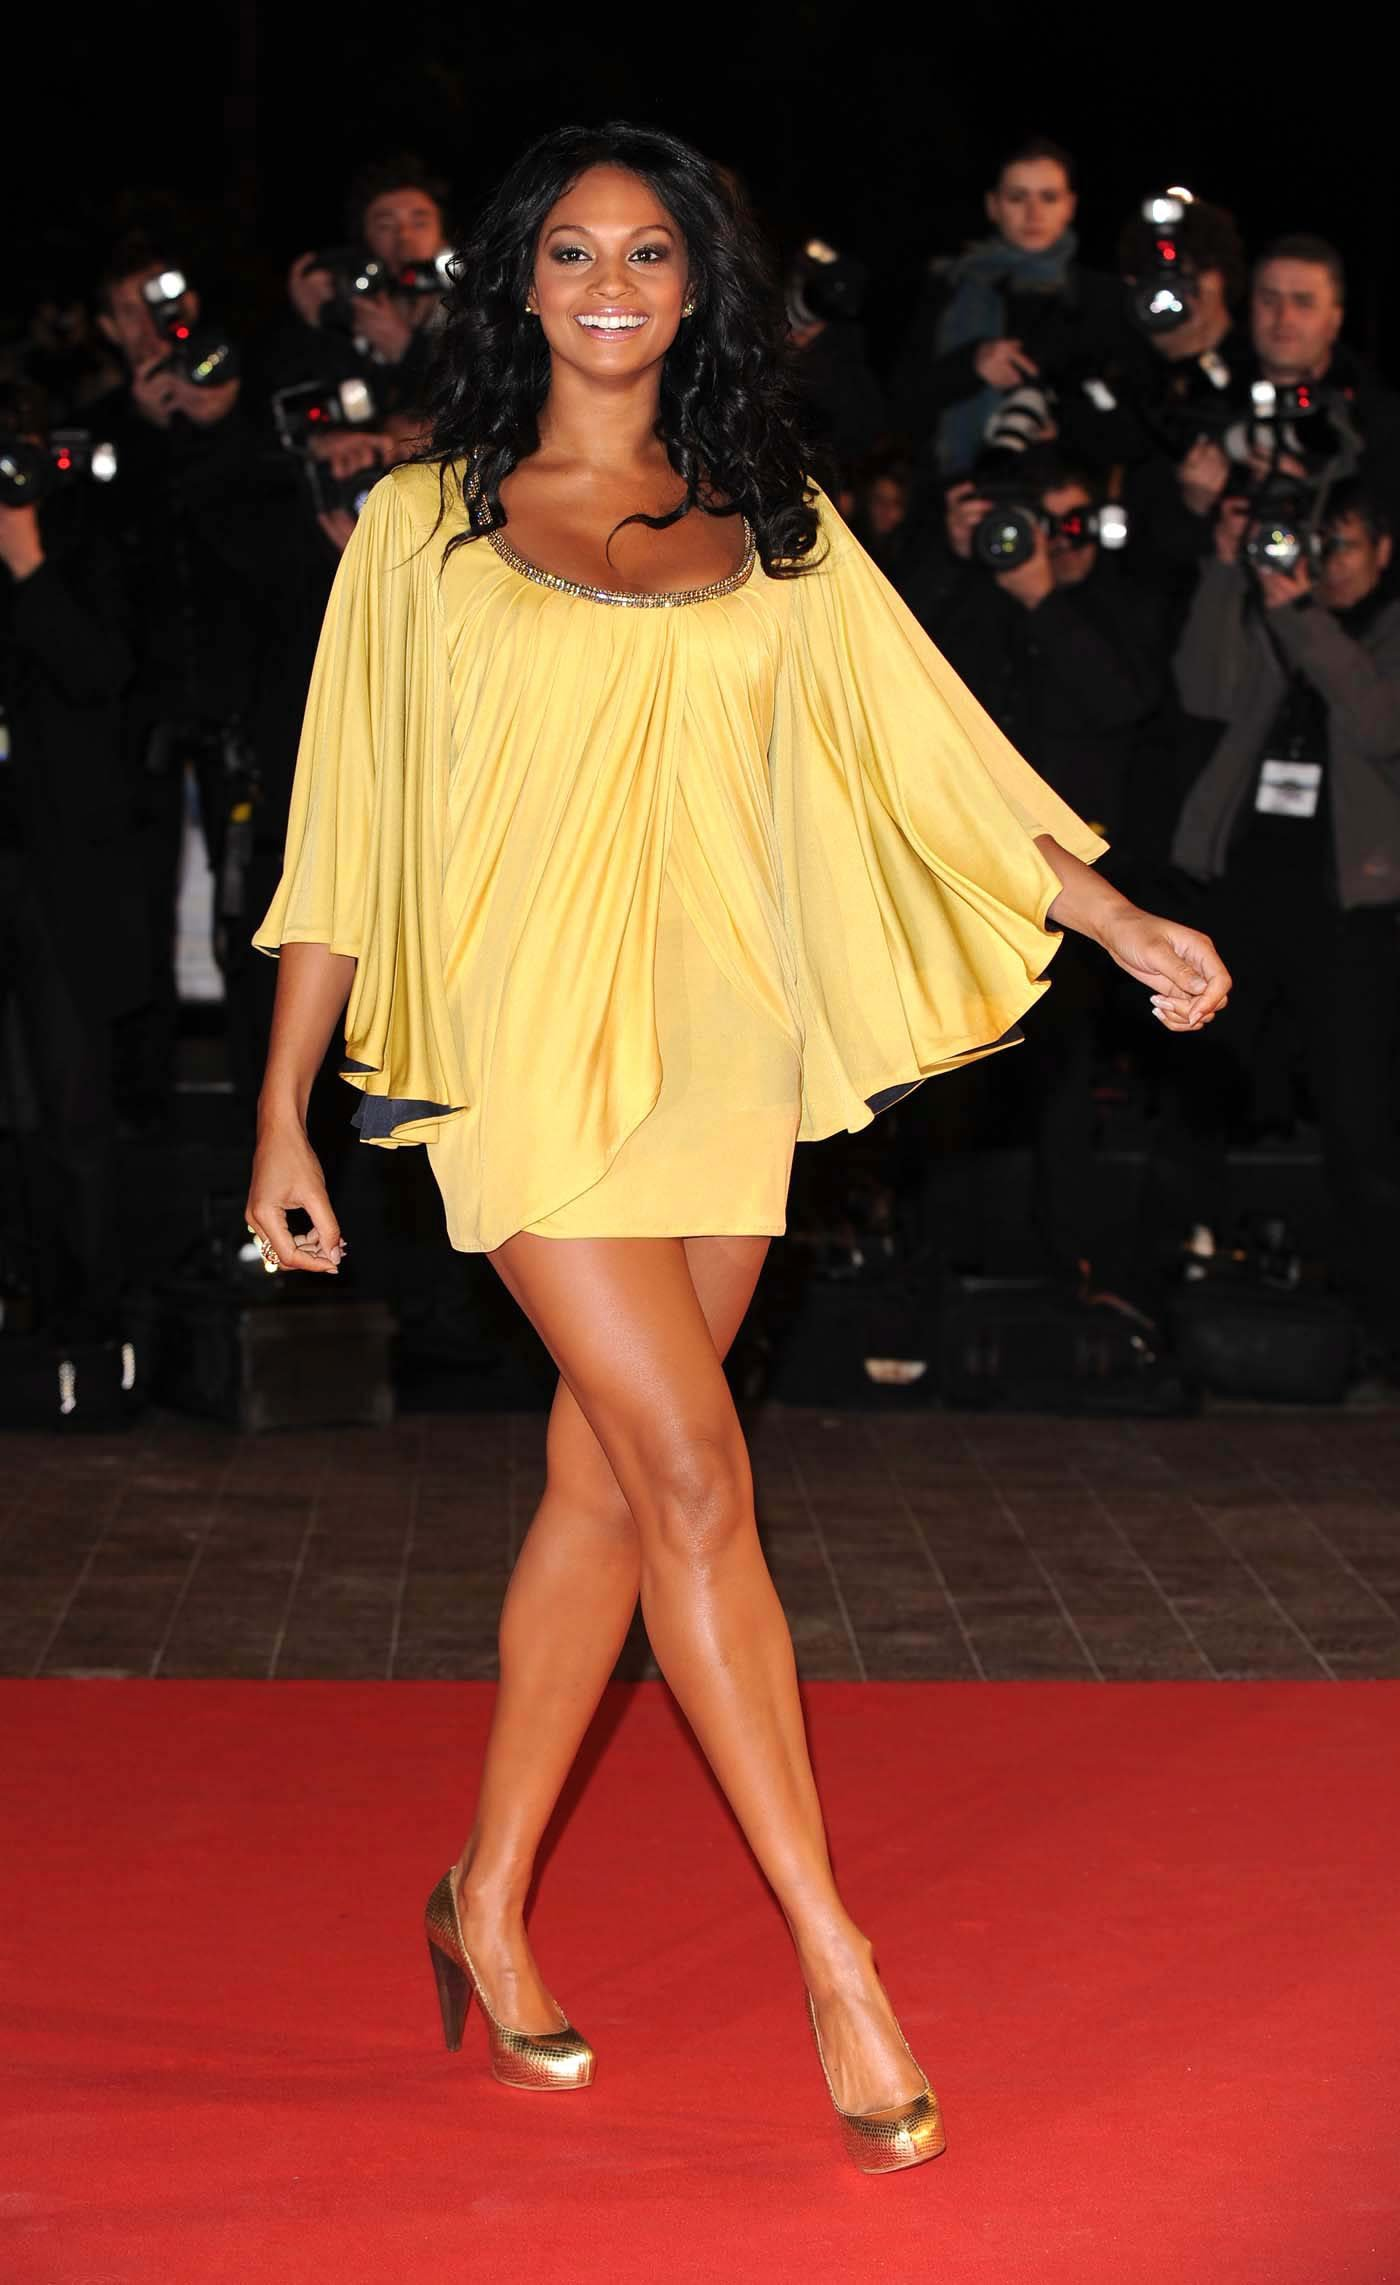 Alesha Dixon photo #351394